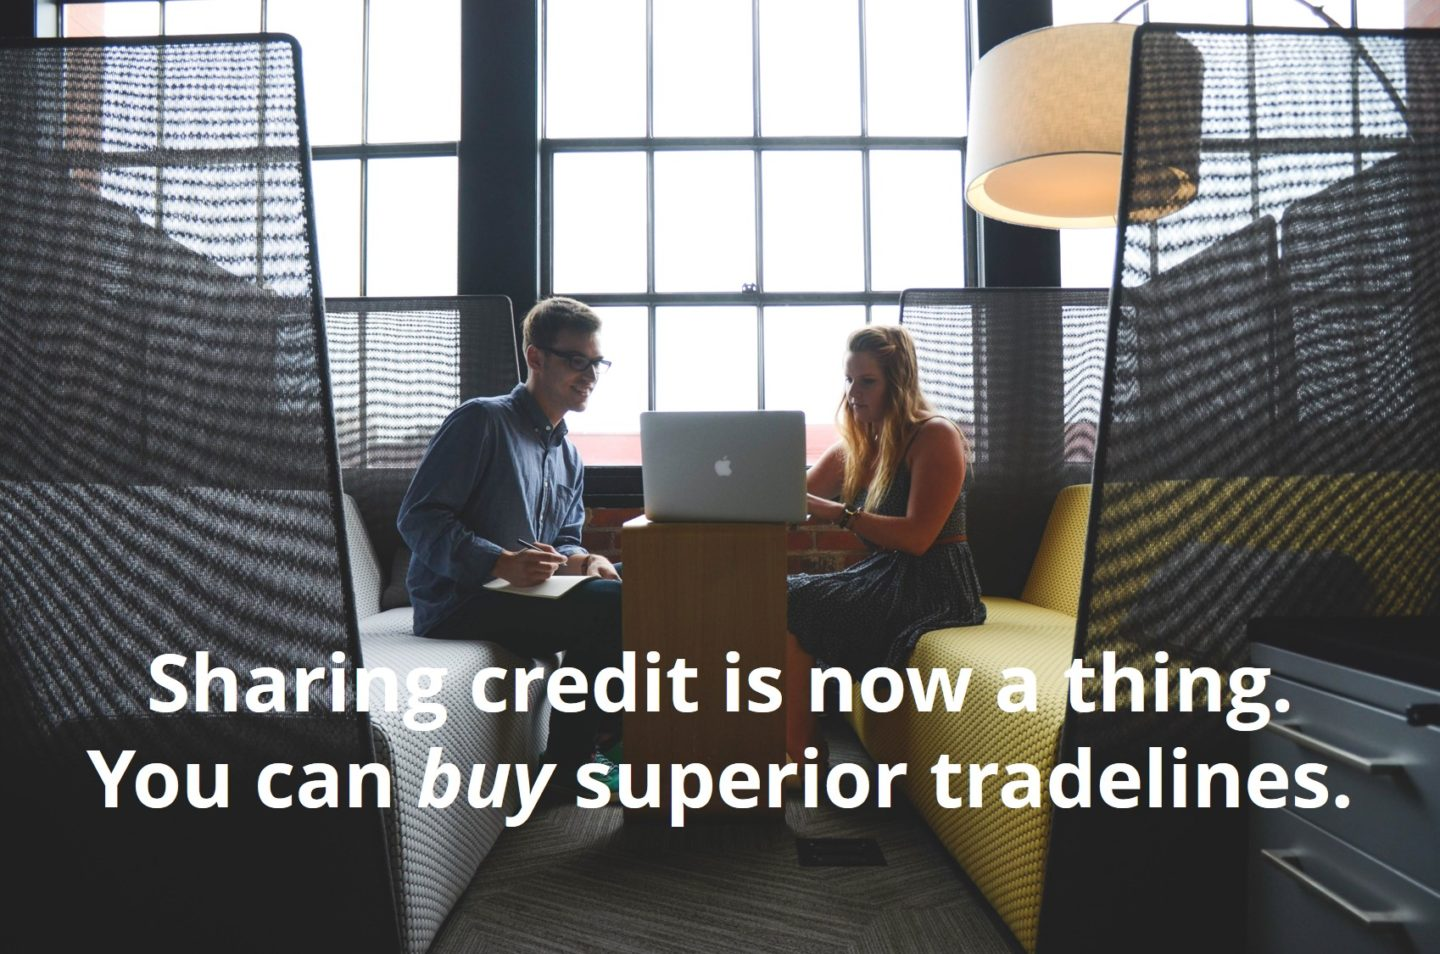 sharing credit for superior tradelines